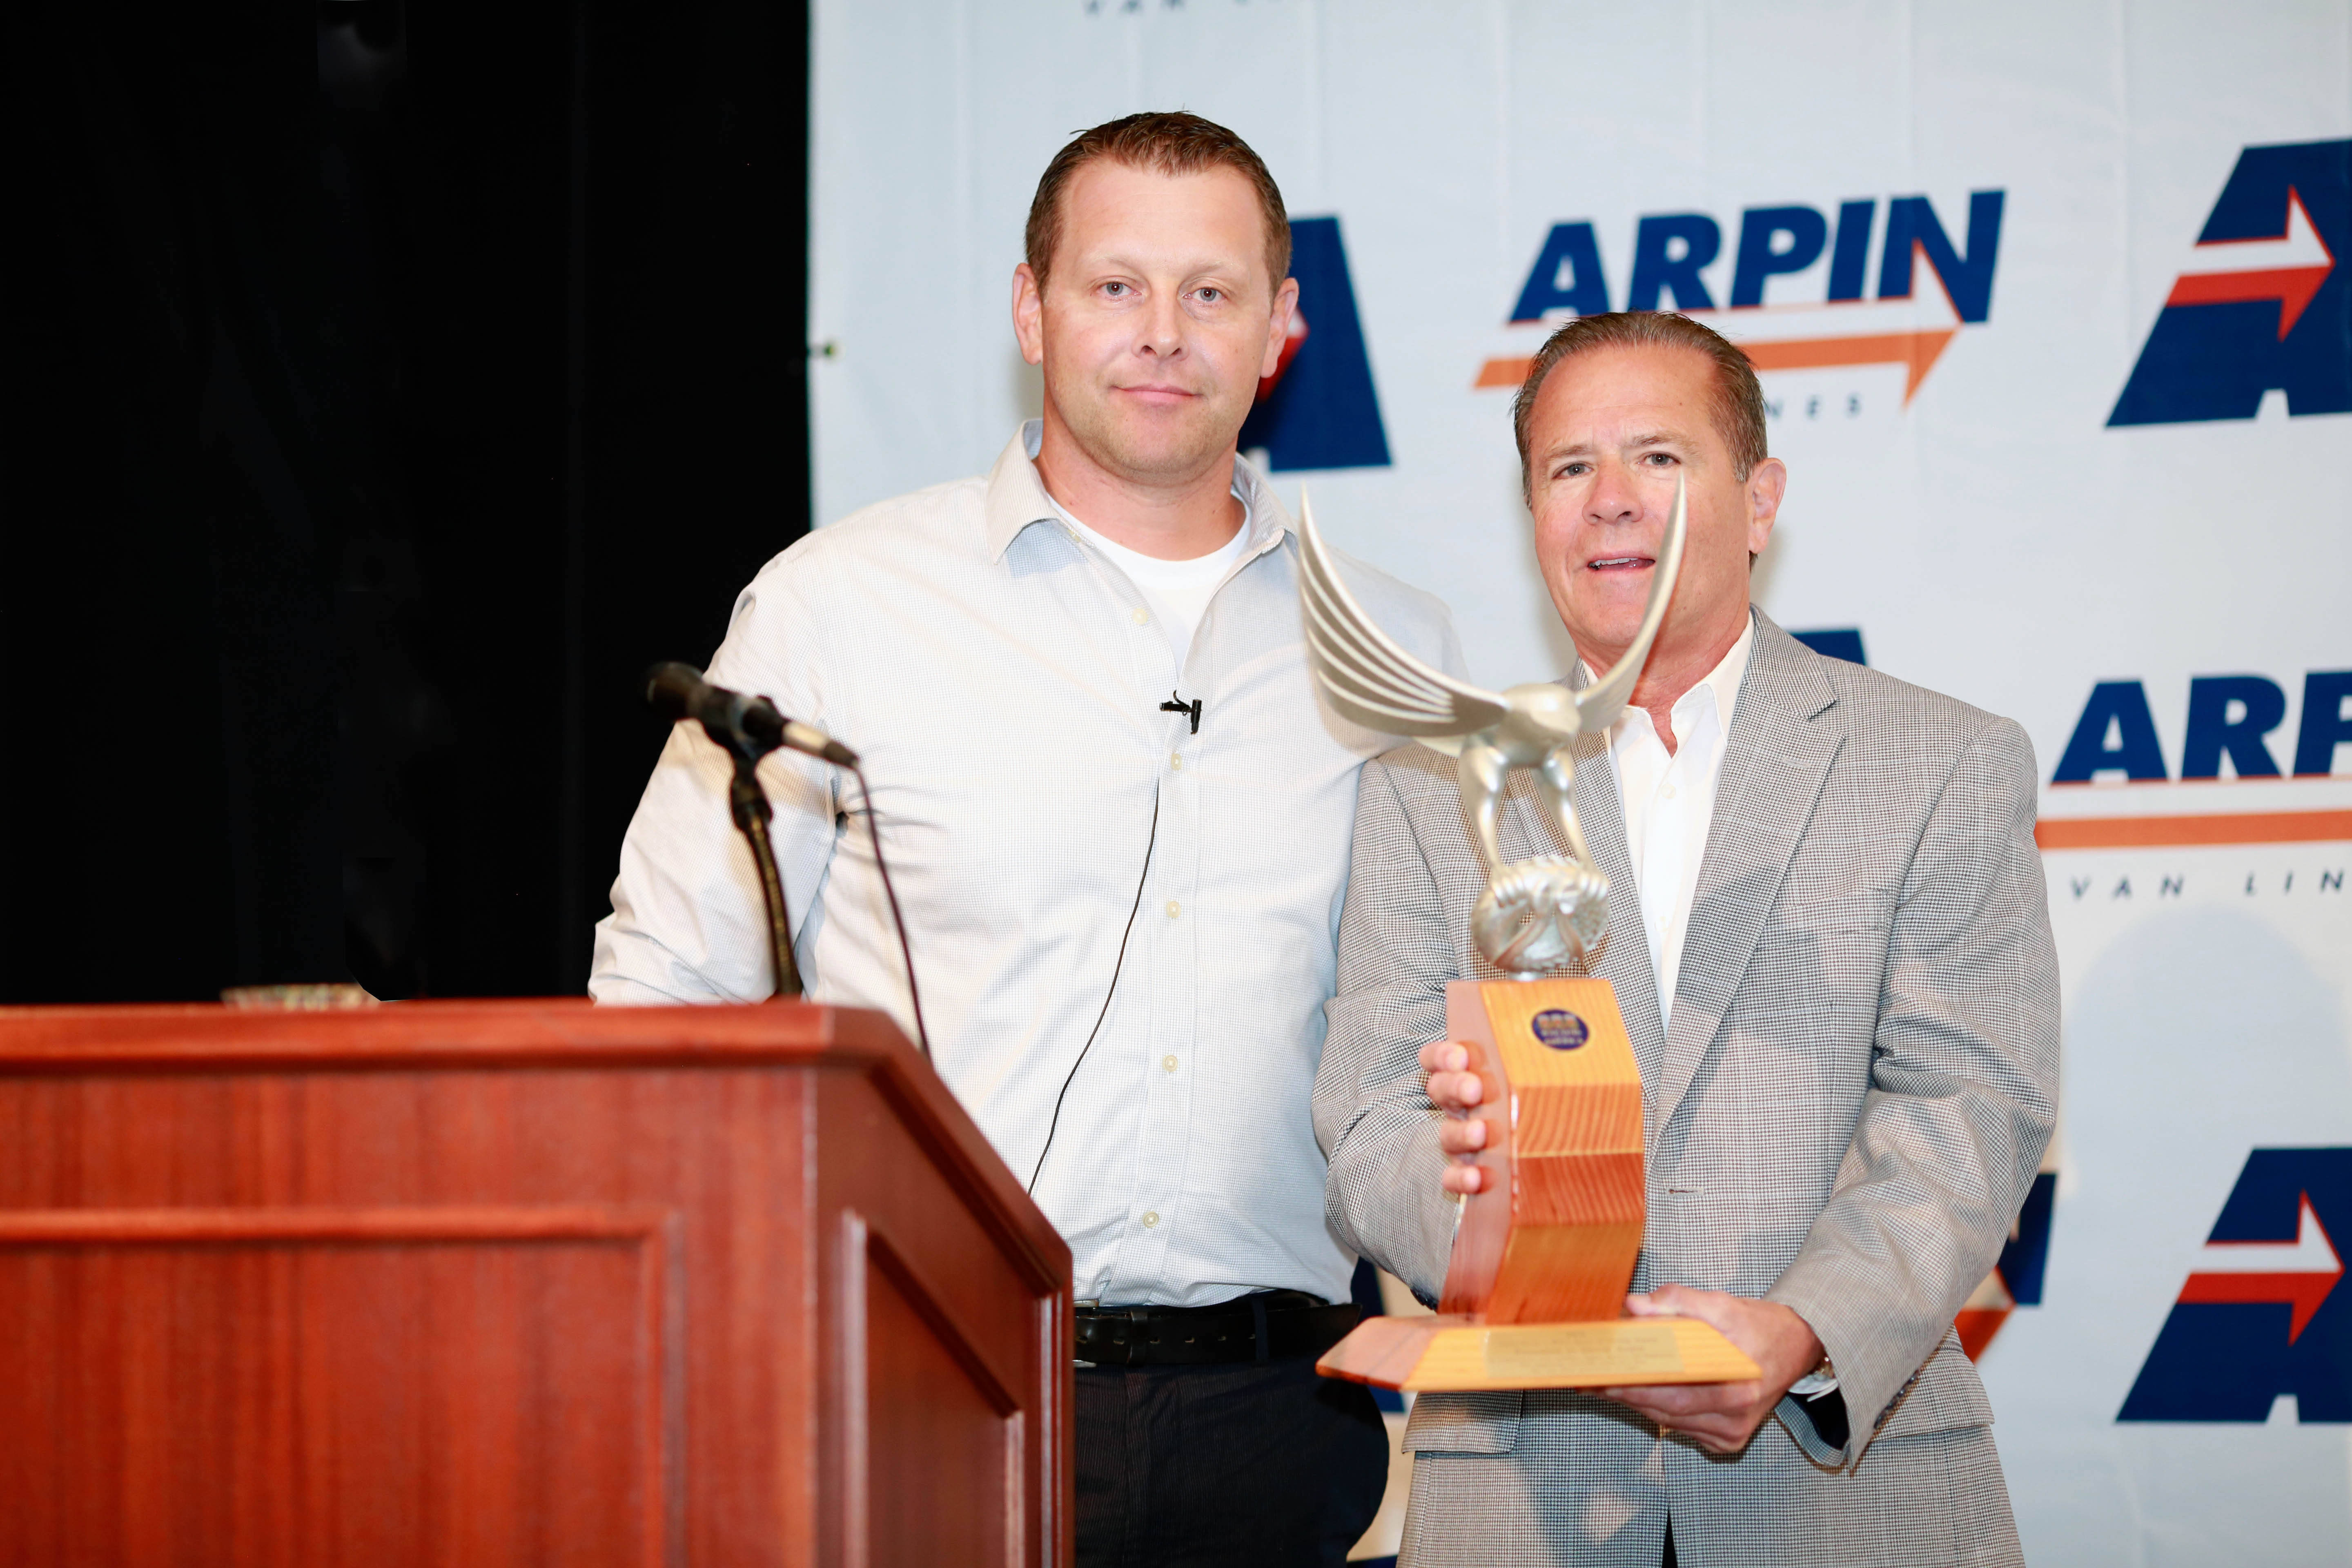 David Arpin receiving award form Rob Worcester